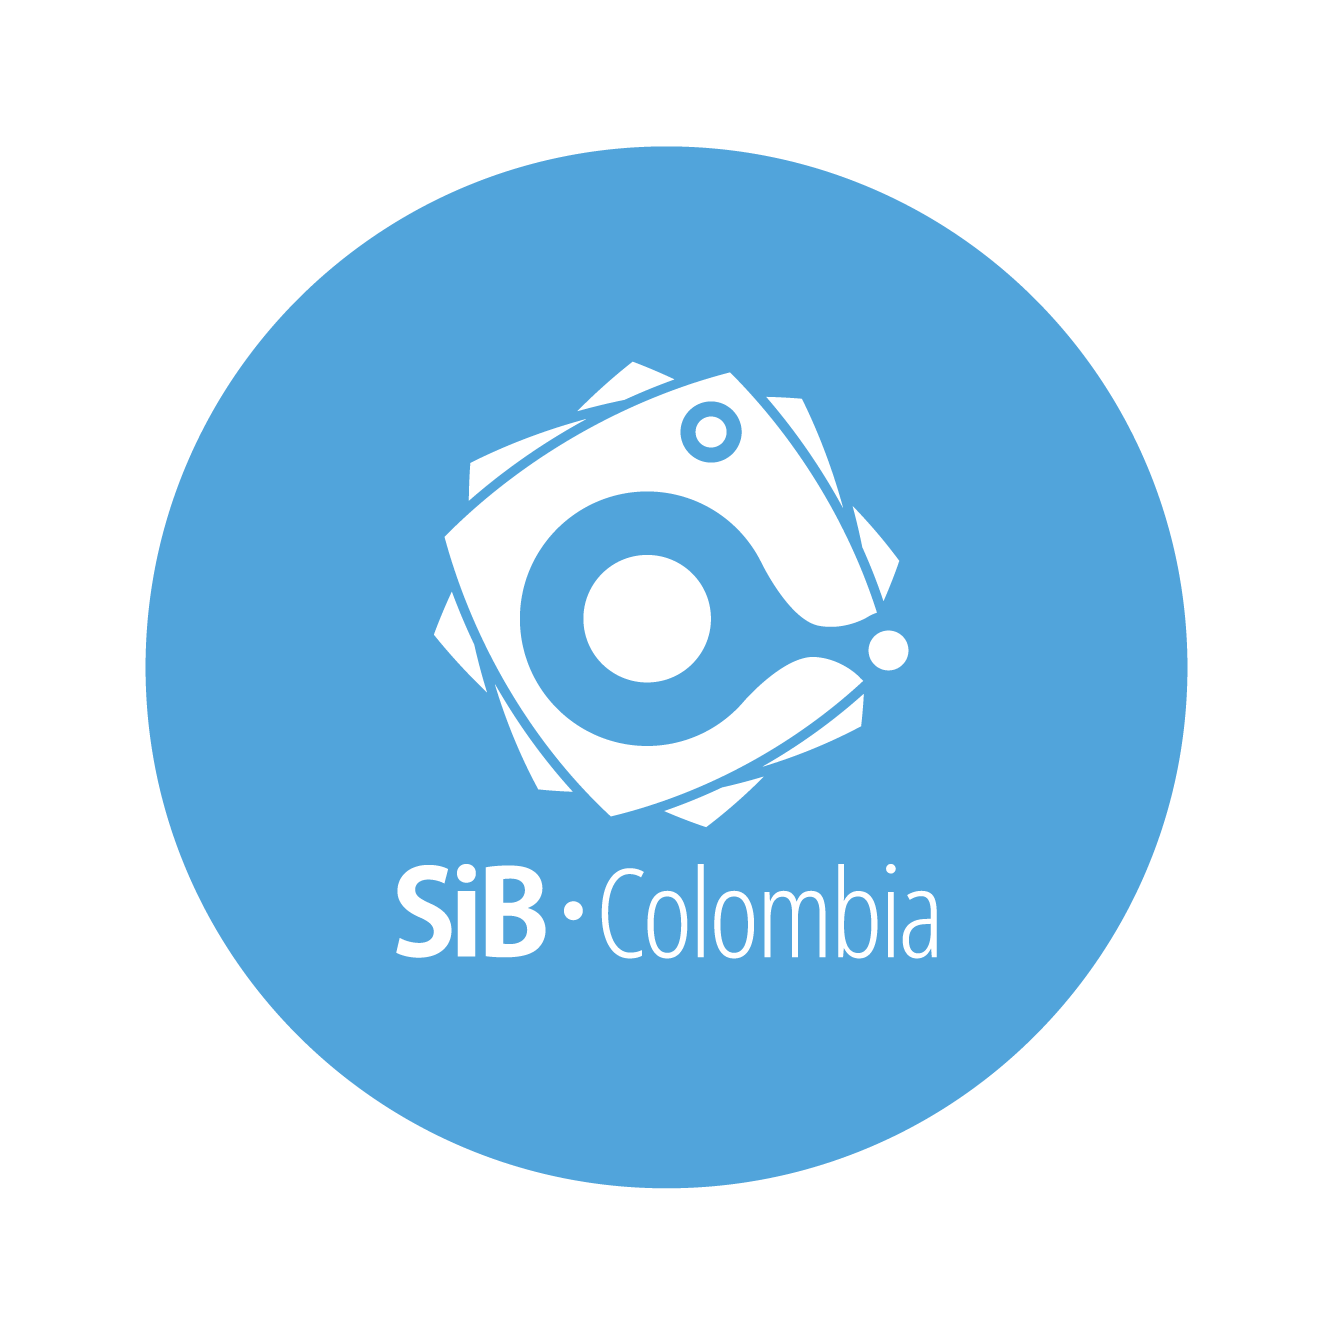 sib-colombia-24